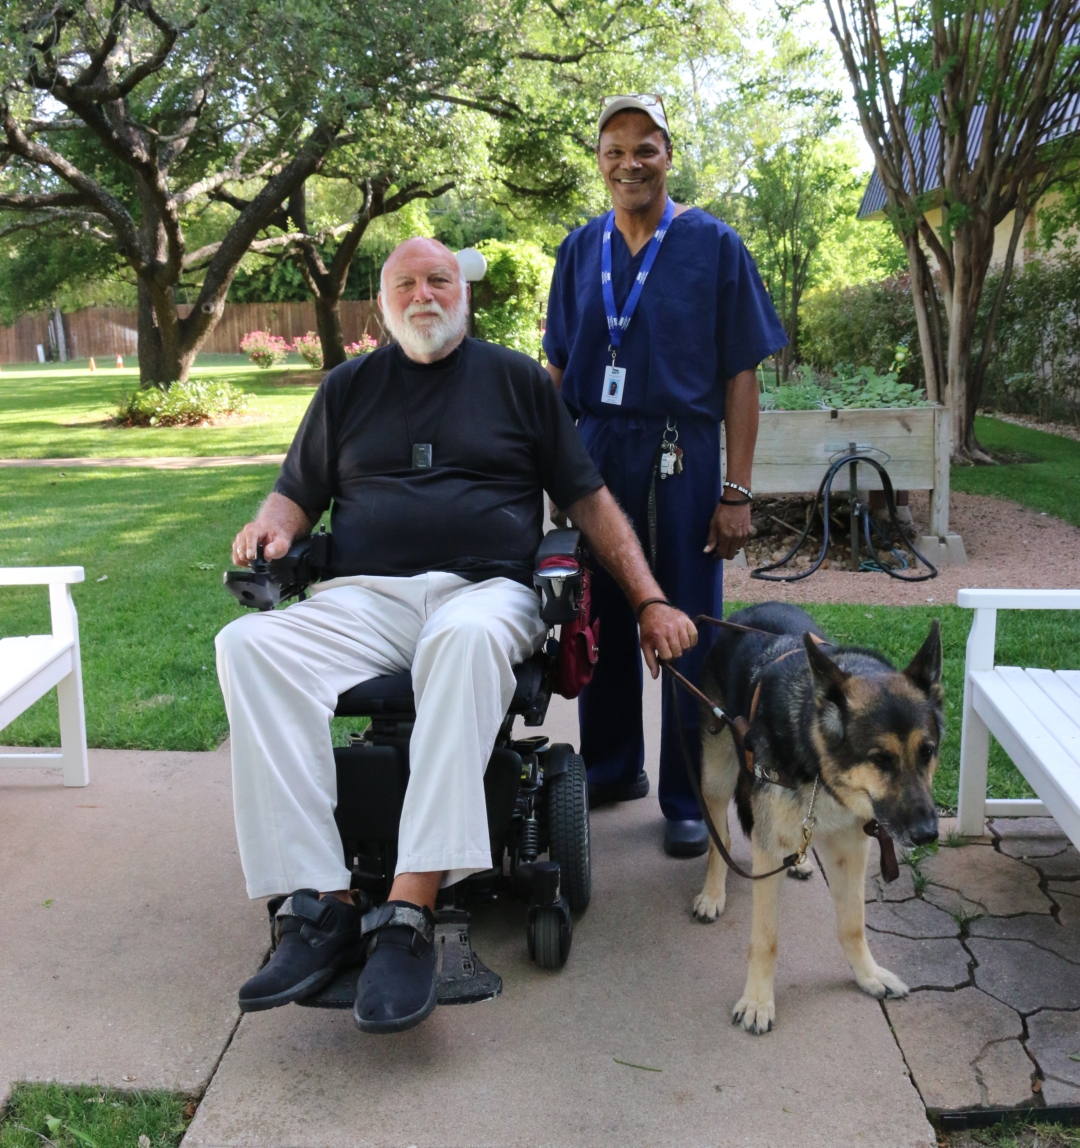 An In-Home Care Recipient Pictured with Support Dog and Care Giver